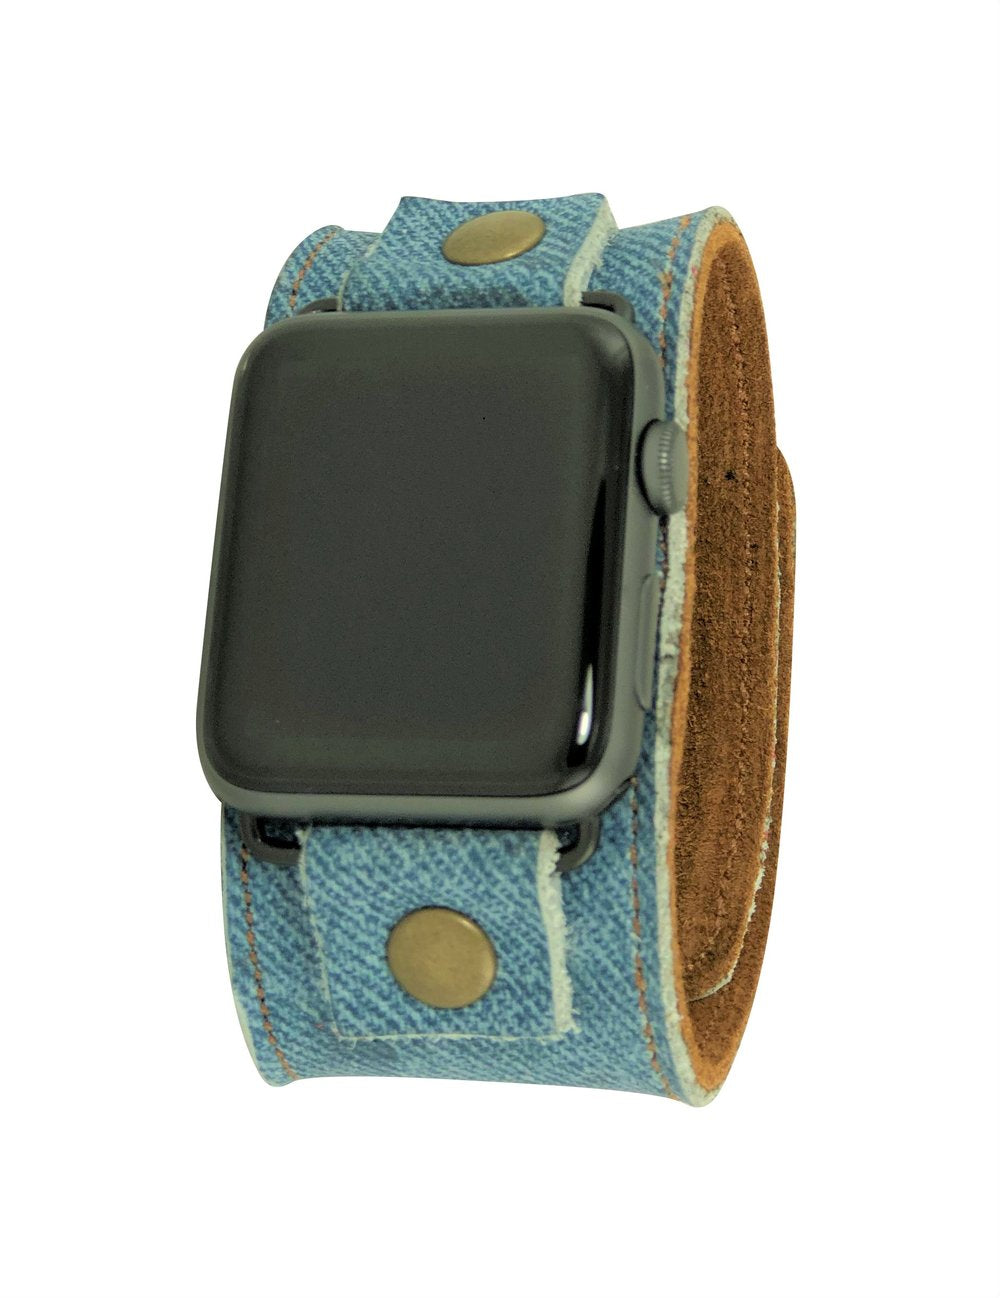 NAN Apple Watch Band - Denim